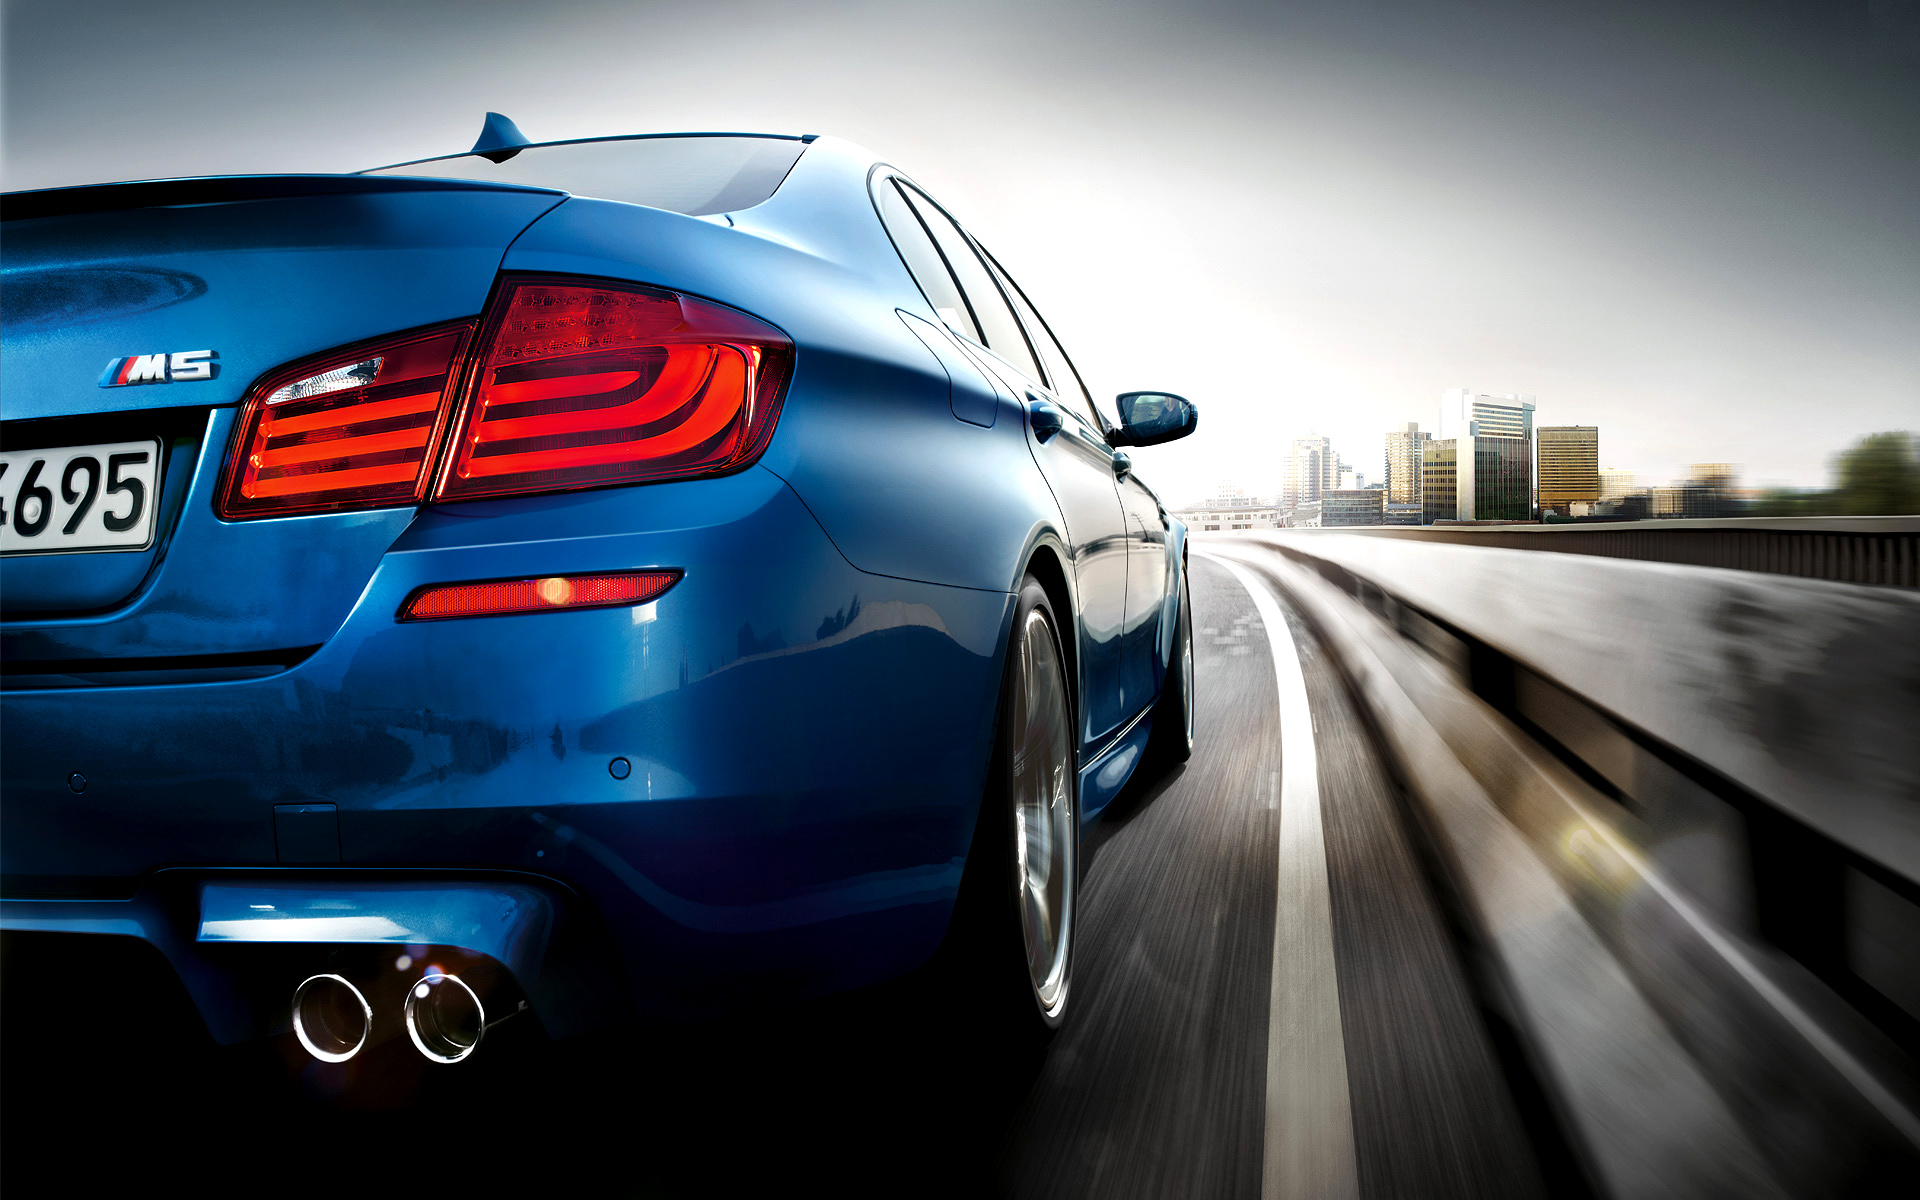 Bmw M5 Wallpaper 9 Hd Wallpapers backgrounds Download   Elsetge 1920x1200